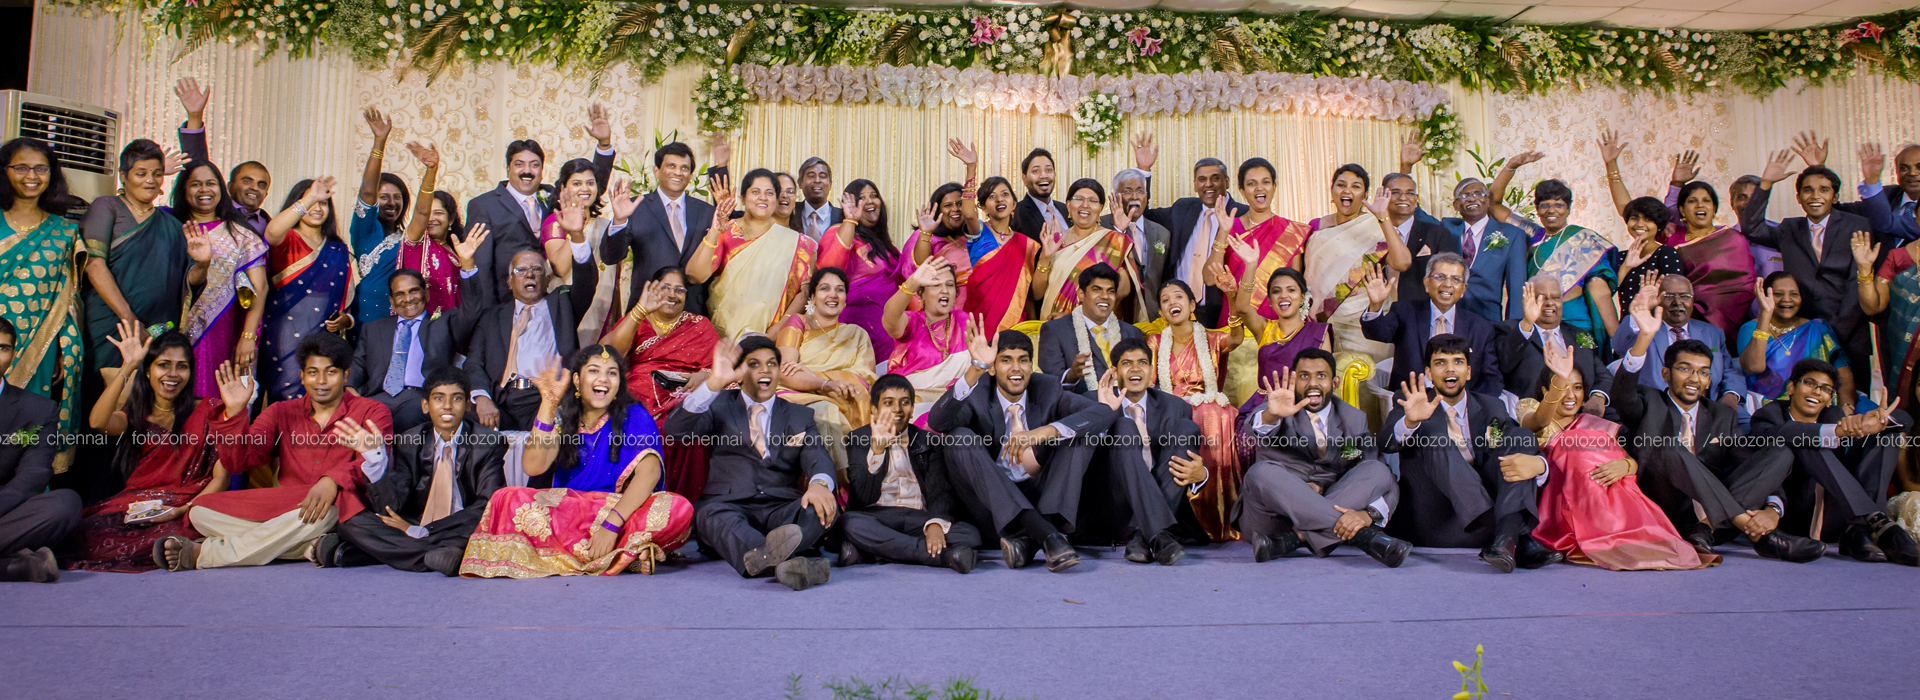 professional wedding photographers in chennai